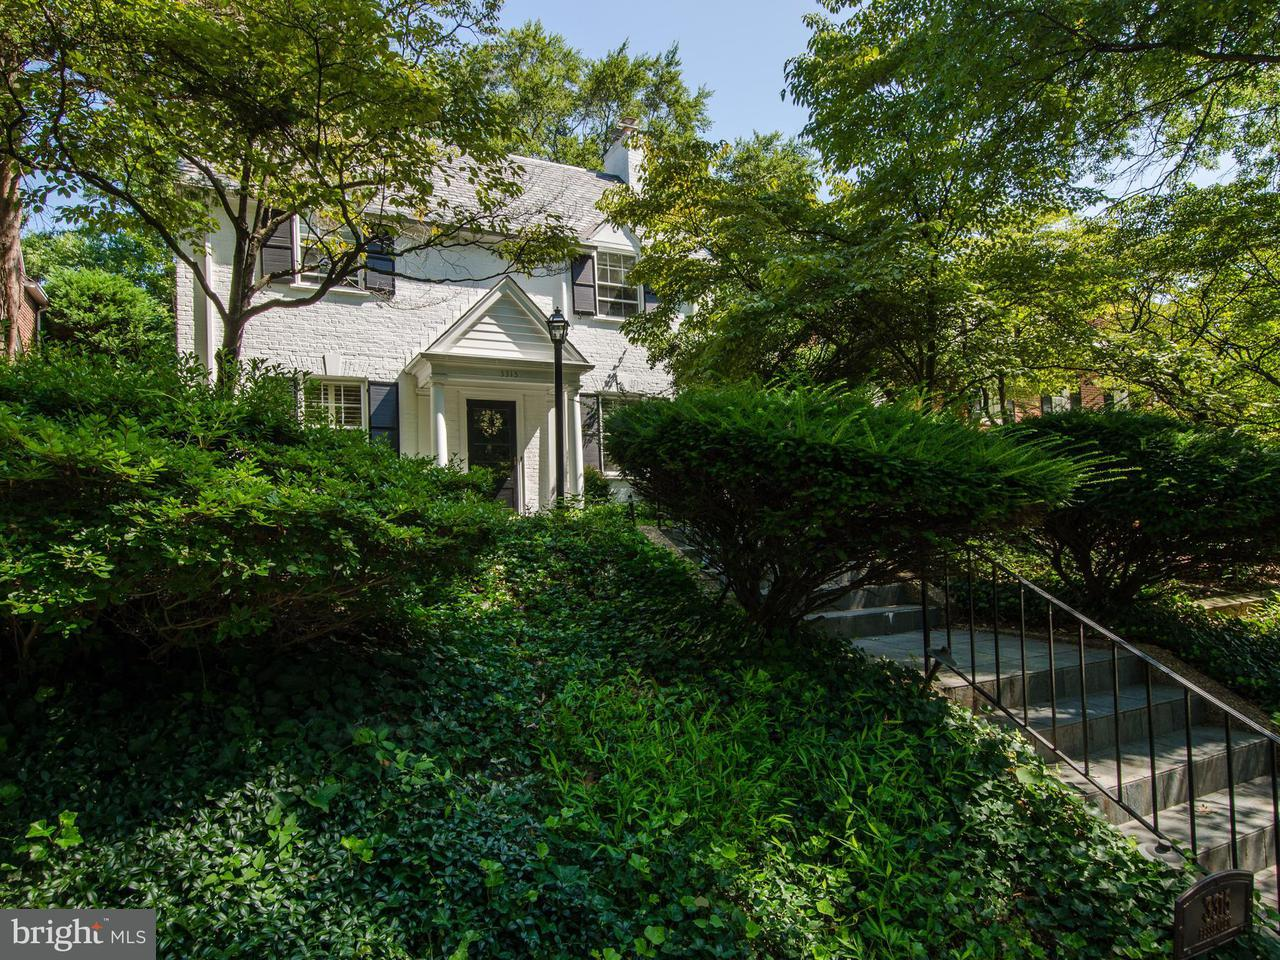 Single Family Home for Sale at 3315 FESSENDEN ST NW 3315 FESSENDEN ST NW Washington, District Of Columbia 20008 United States